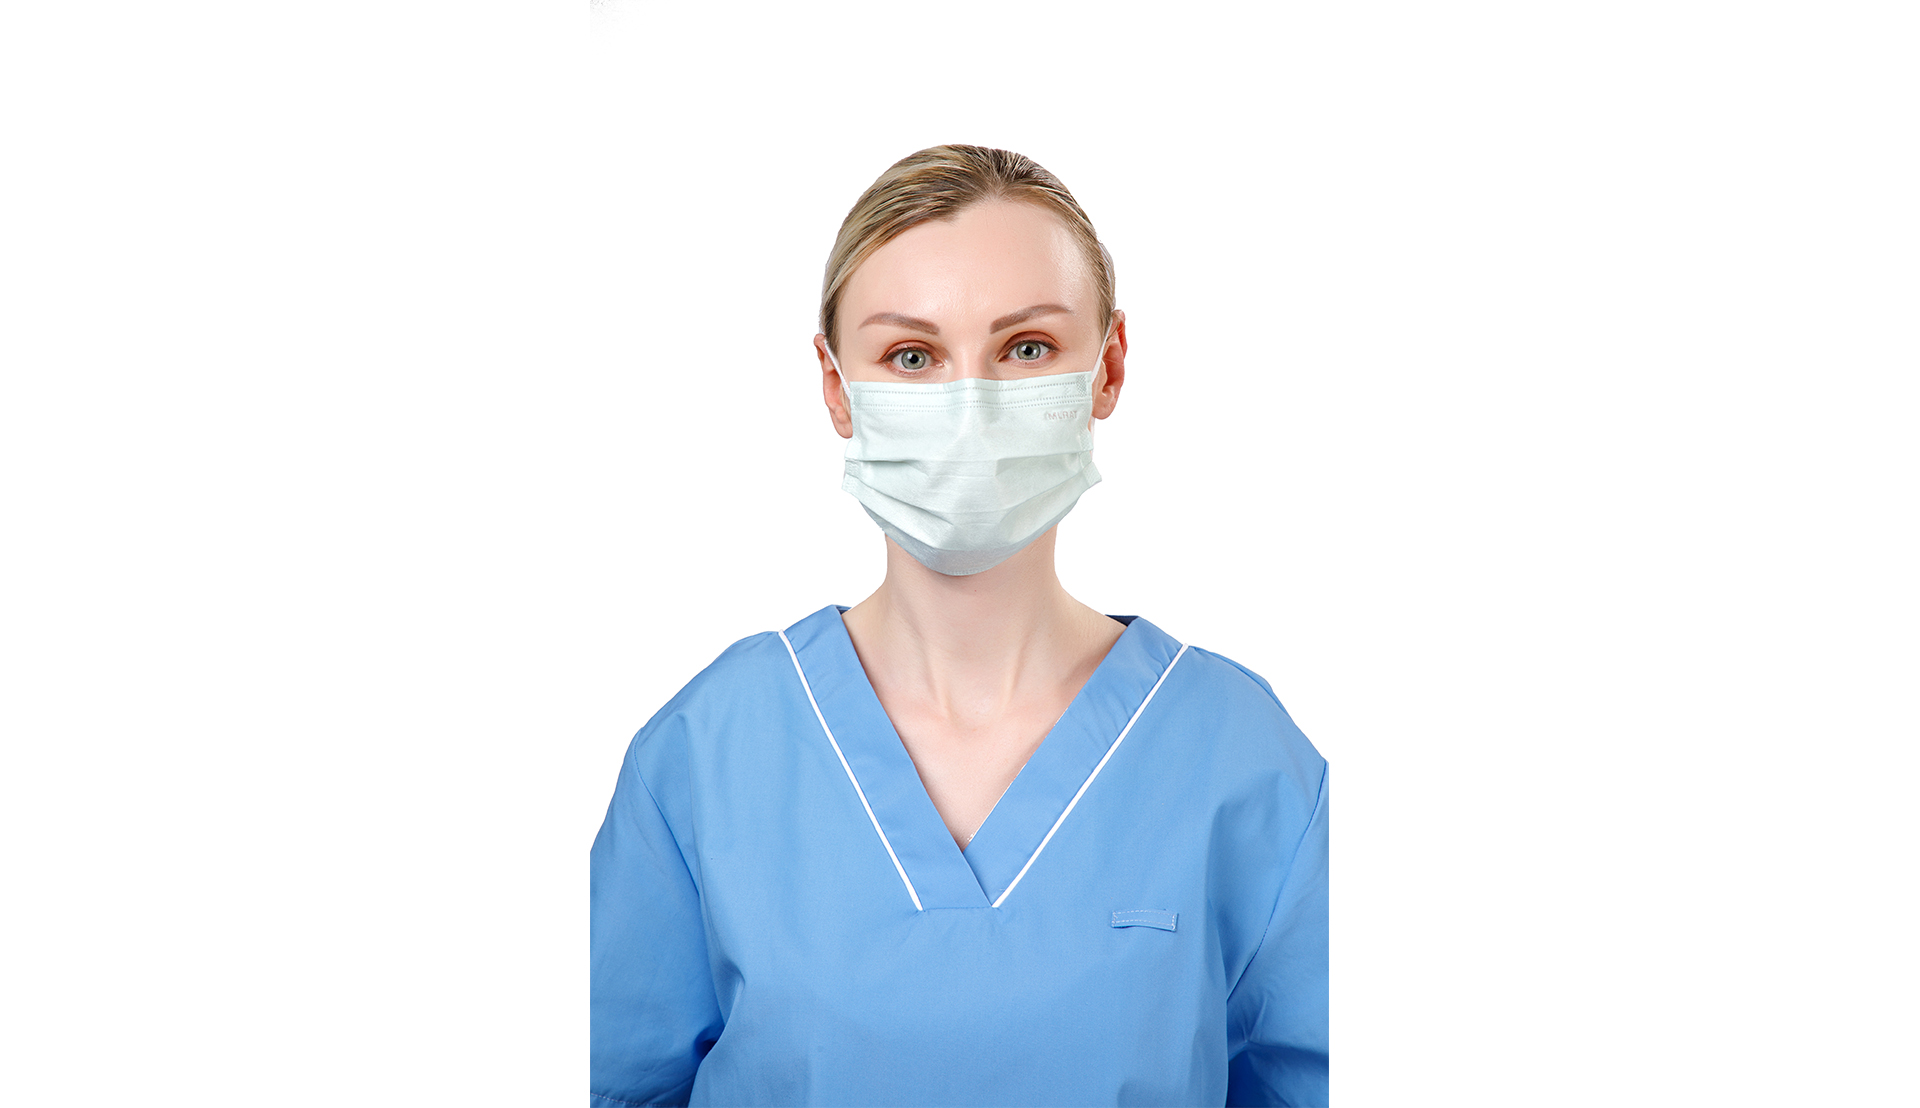 EN14683 TYPE I Surgical Mask with Ear Loops